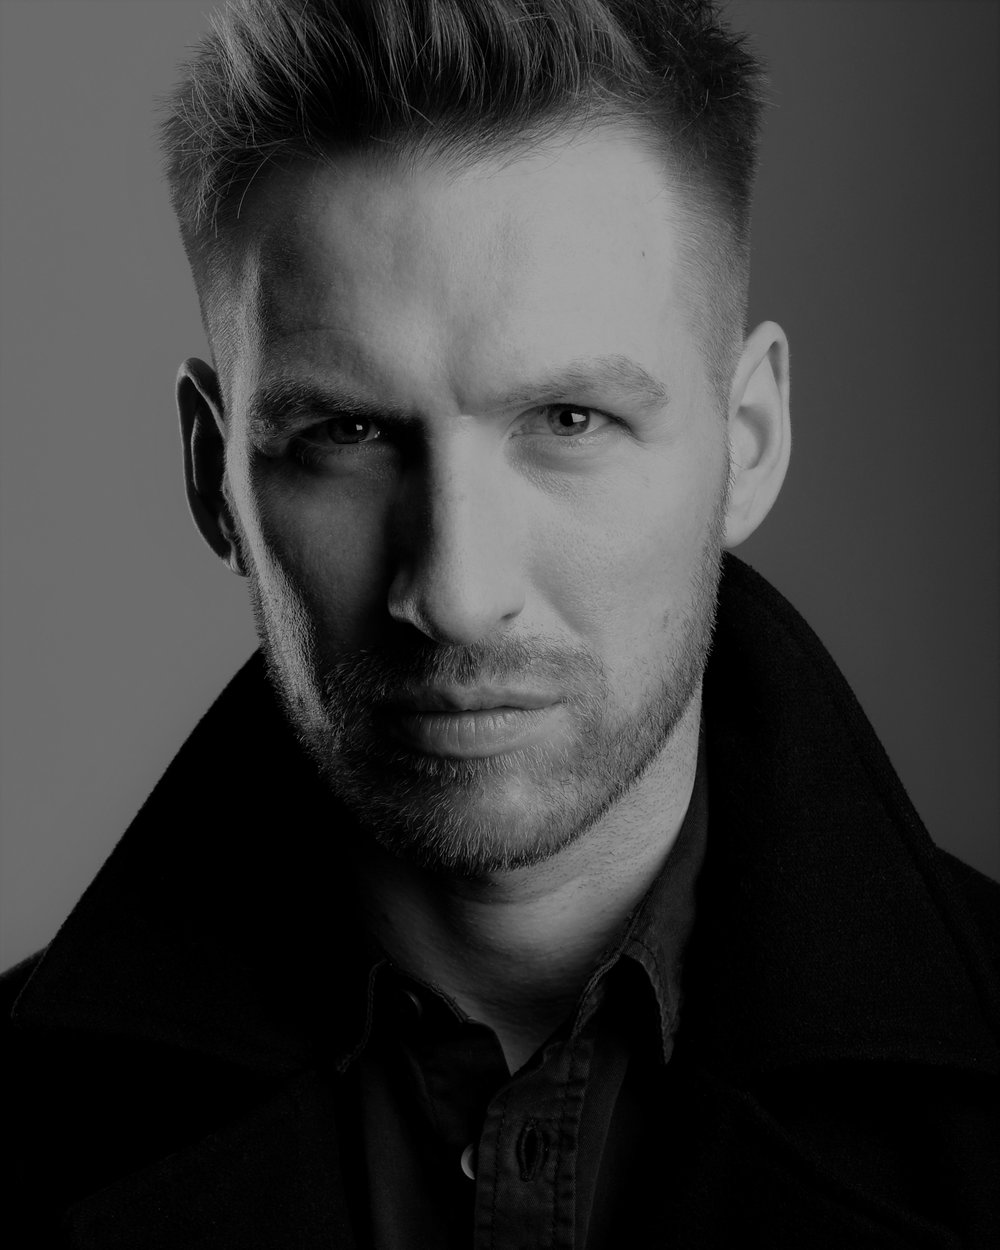 William de Coverly - B&W Headshot 2017 #1.jpg